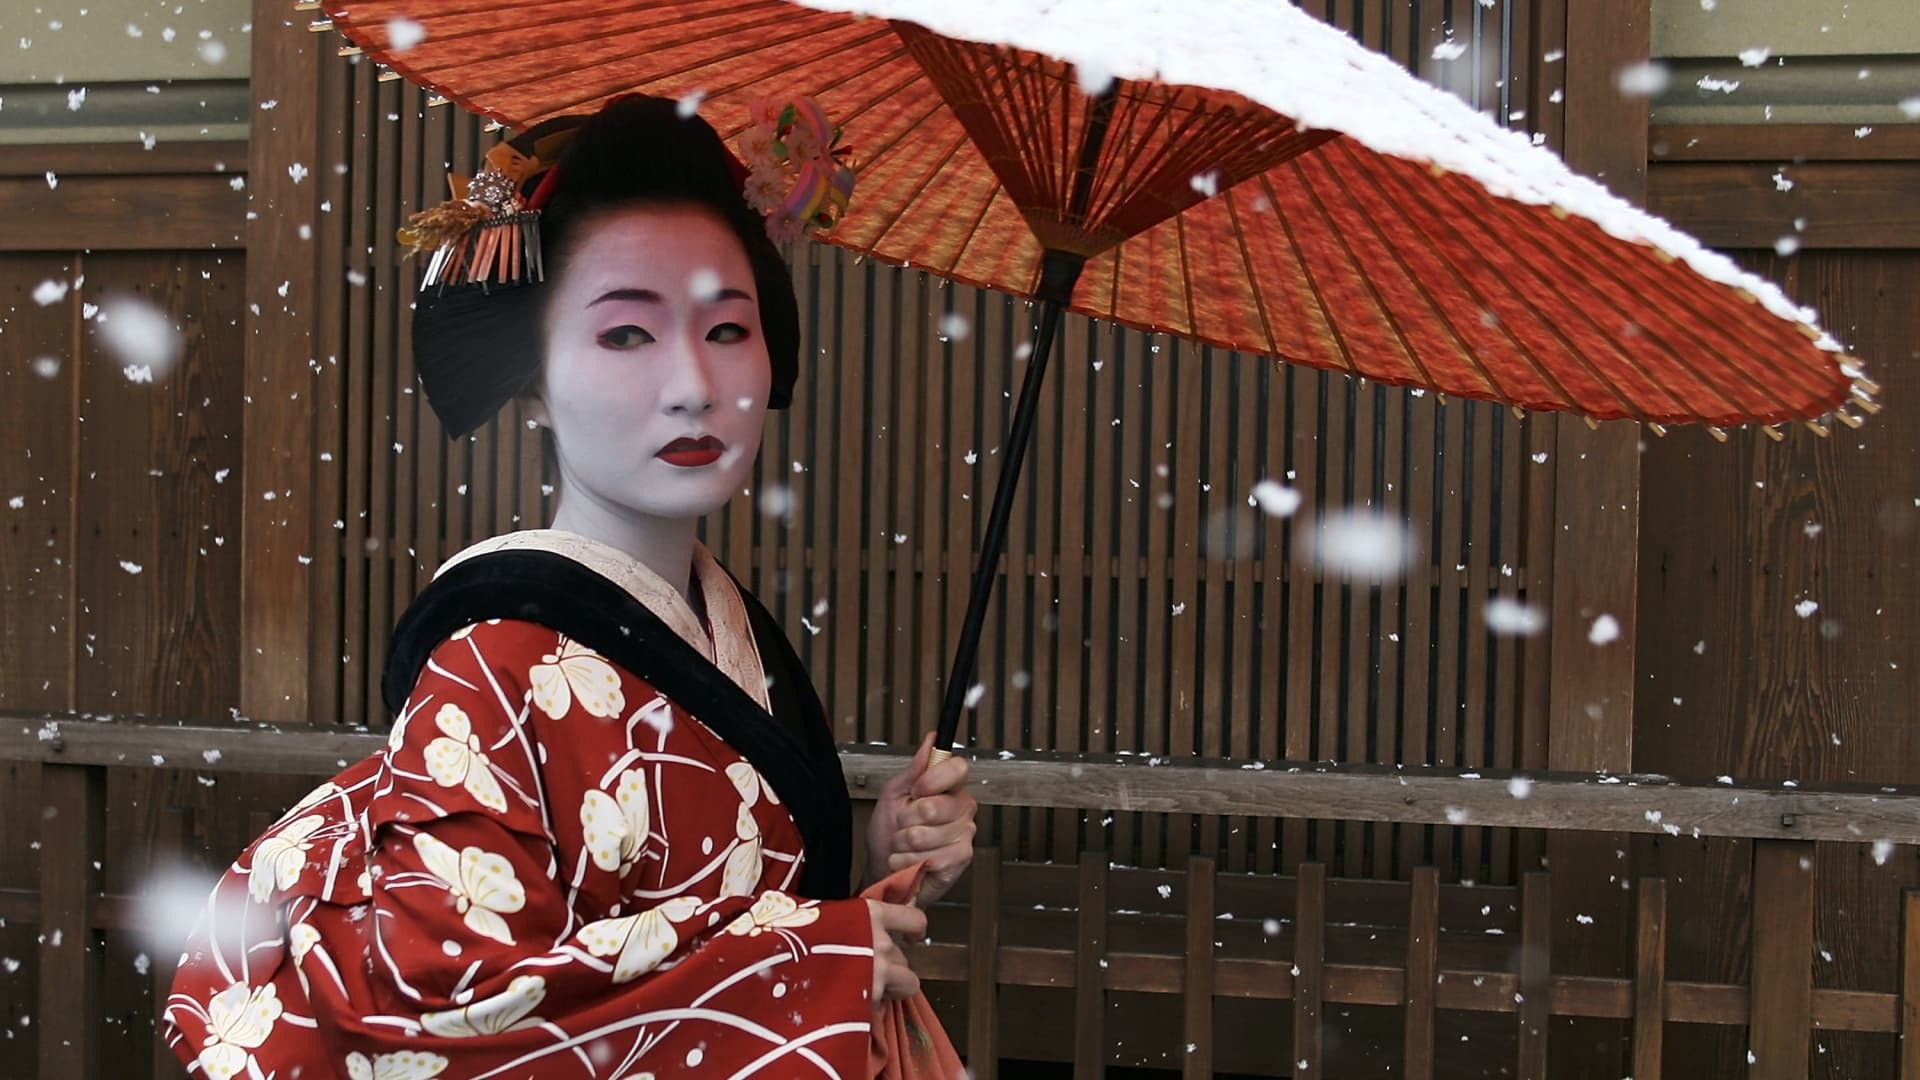 A maiko, or appentice geisha, walks in the snow in the district of Gion in Kyoto, Japan.